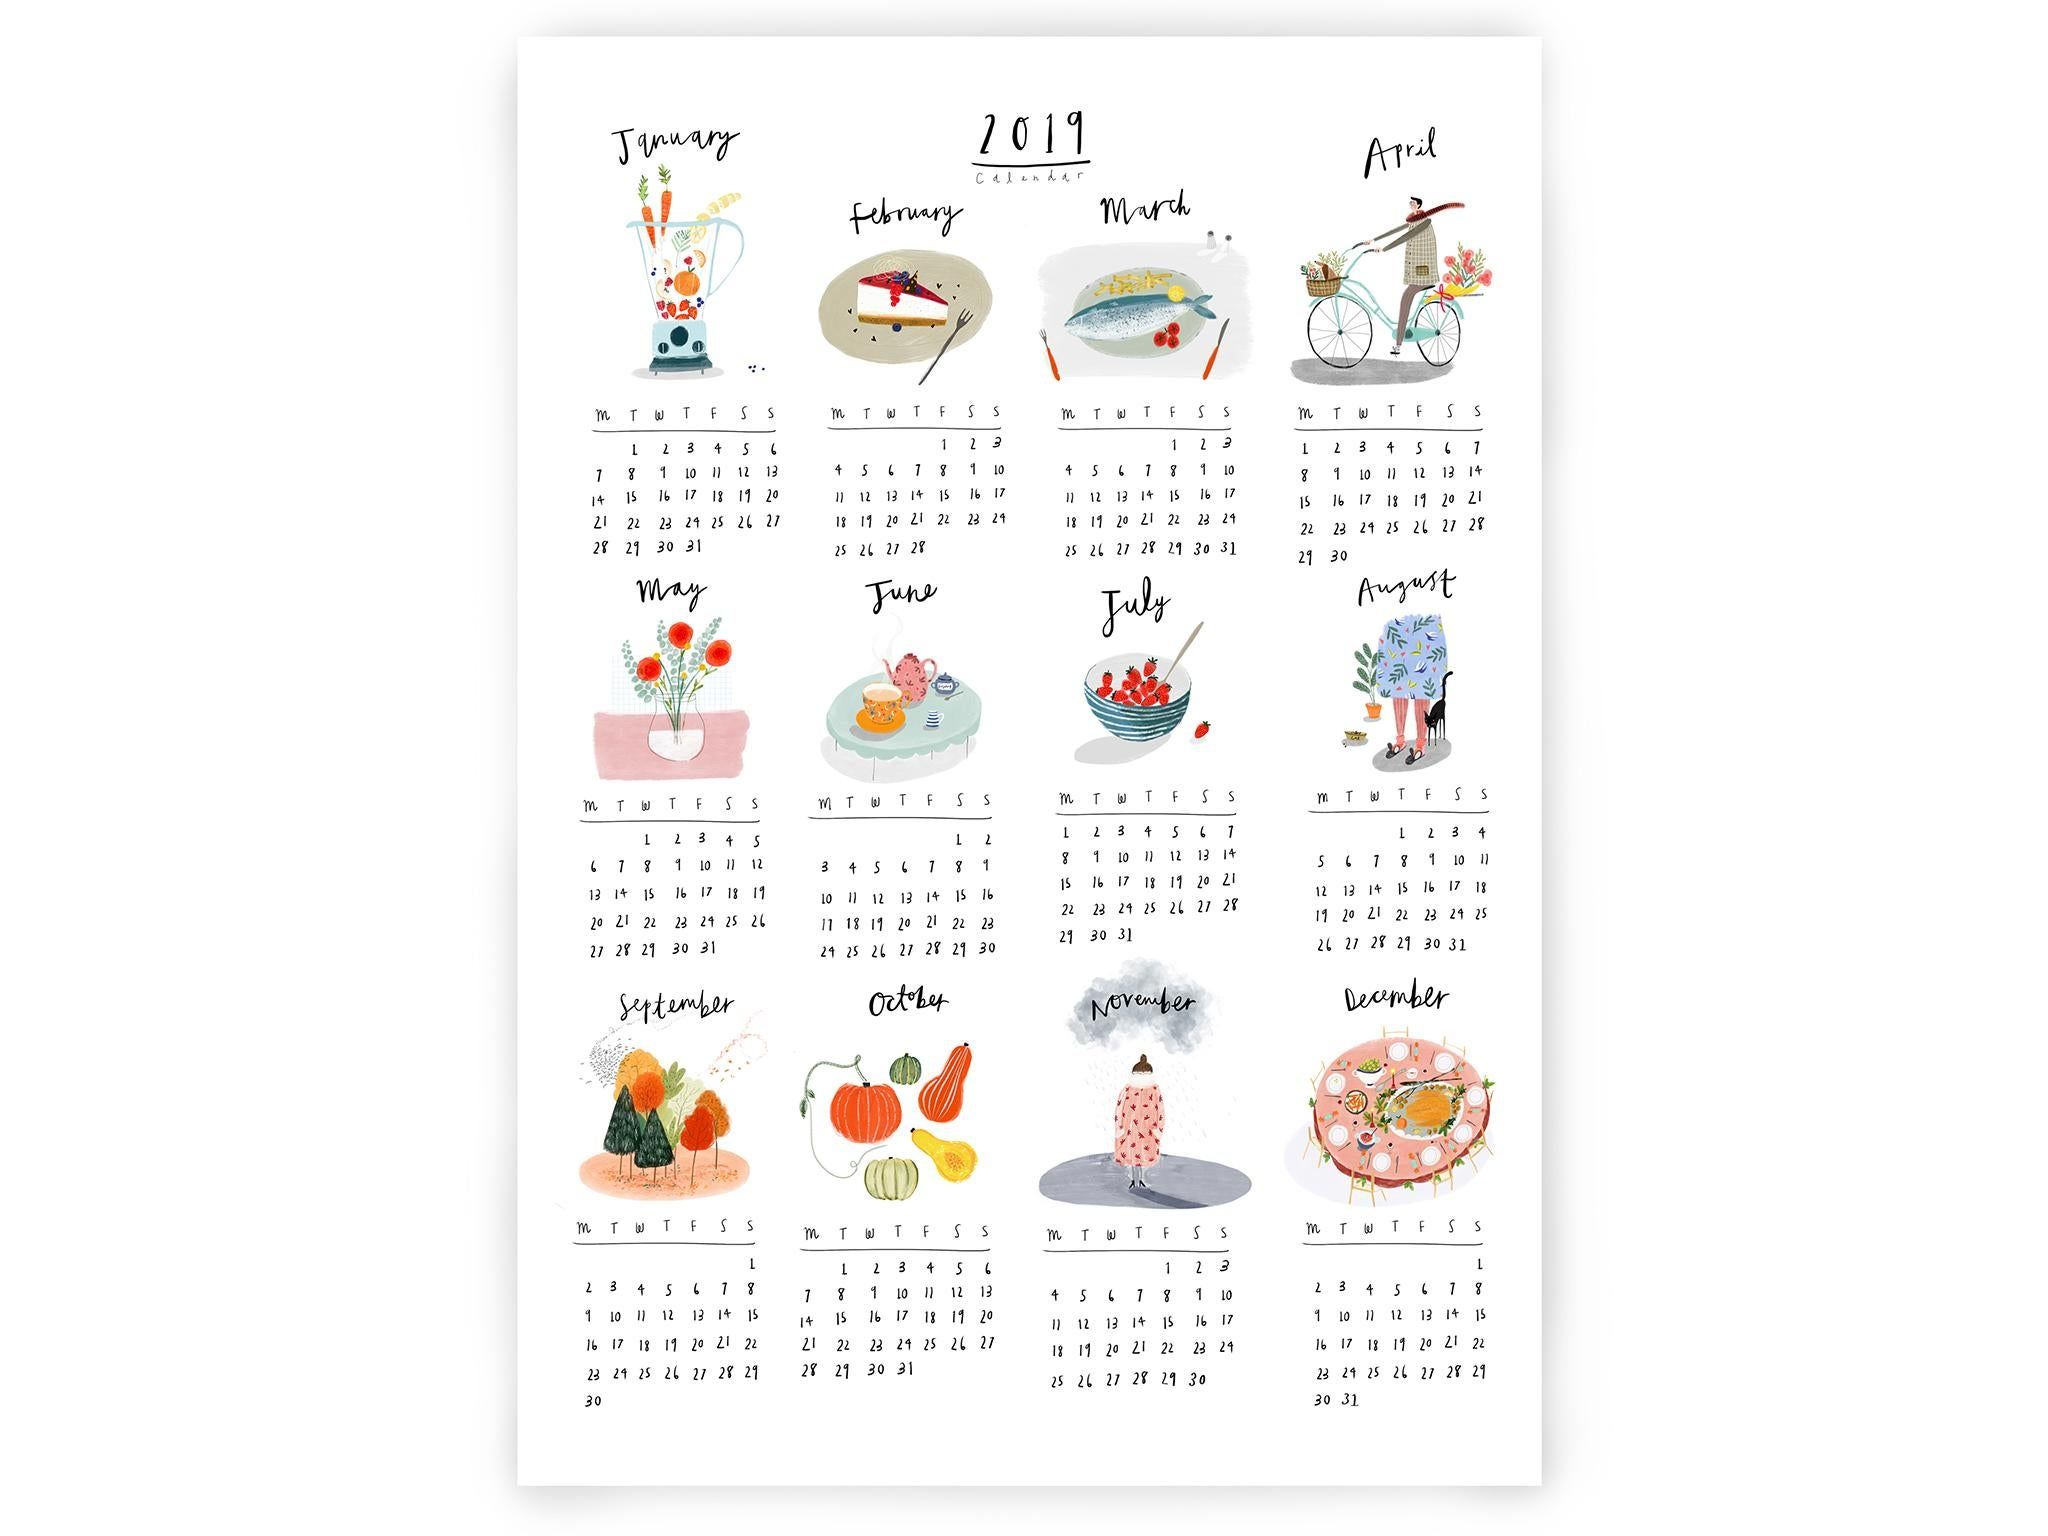 2019 Quirky Calendar Print by Katy Pillinger: from £14, Etsy